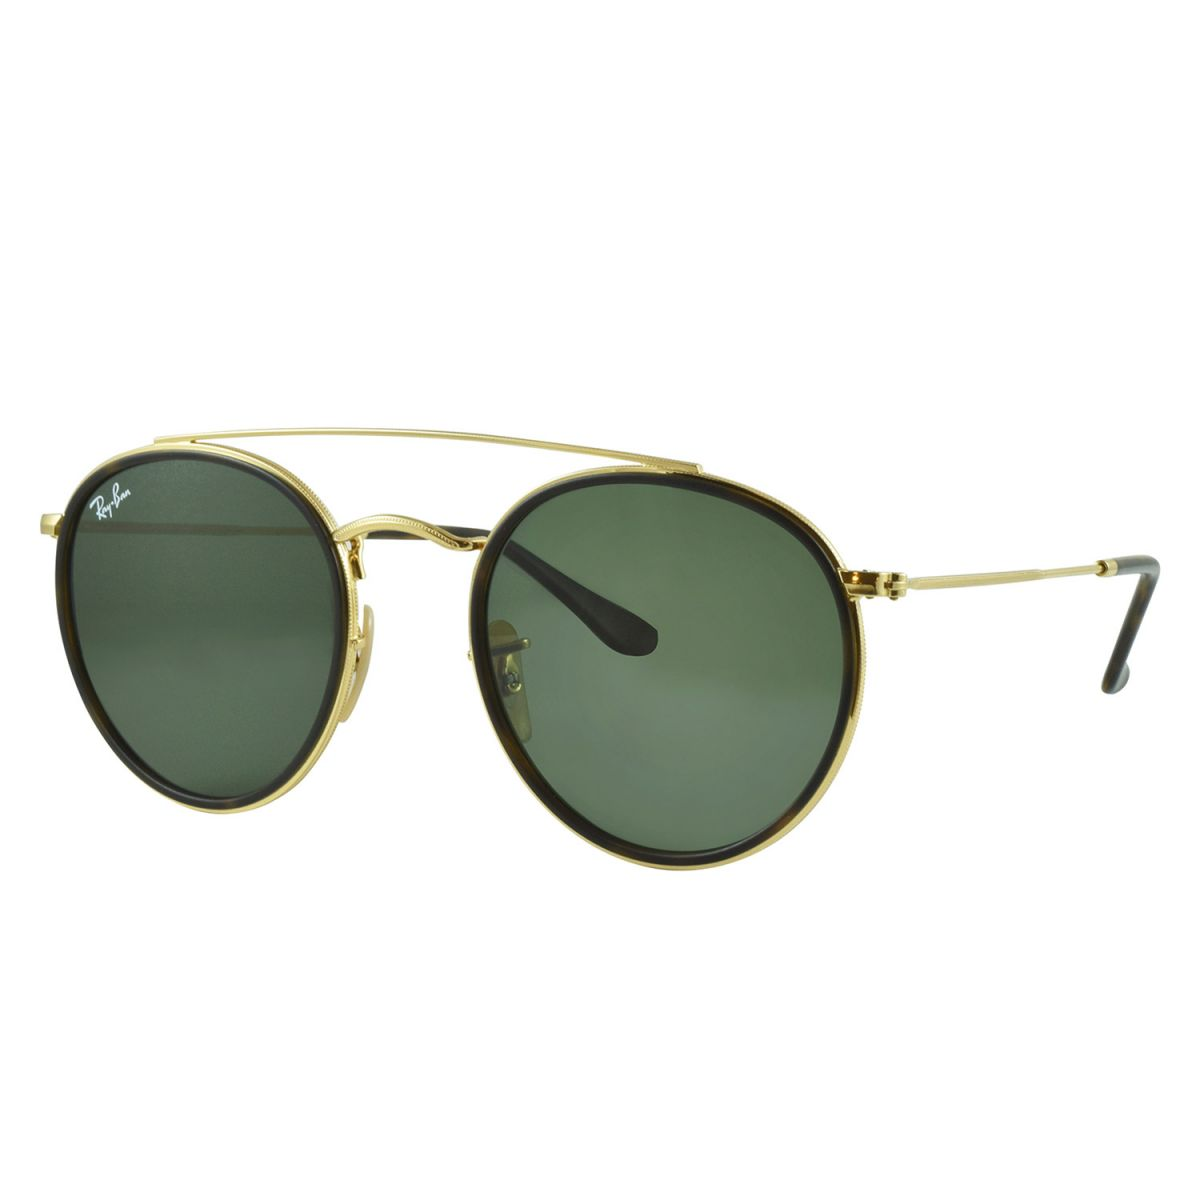 21106b36c1bb6 Óculos de Sol Ray-Ban Rb3647n 001 51 Round Double Bridge